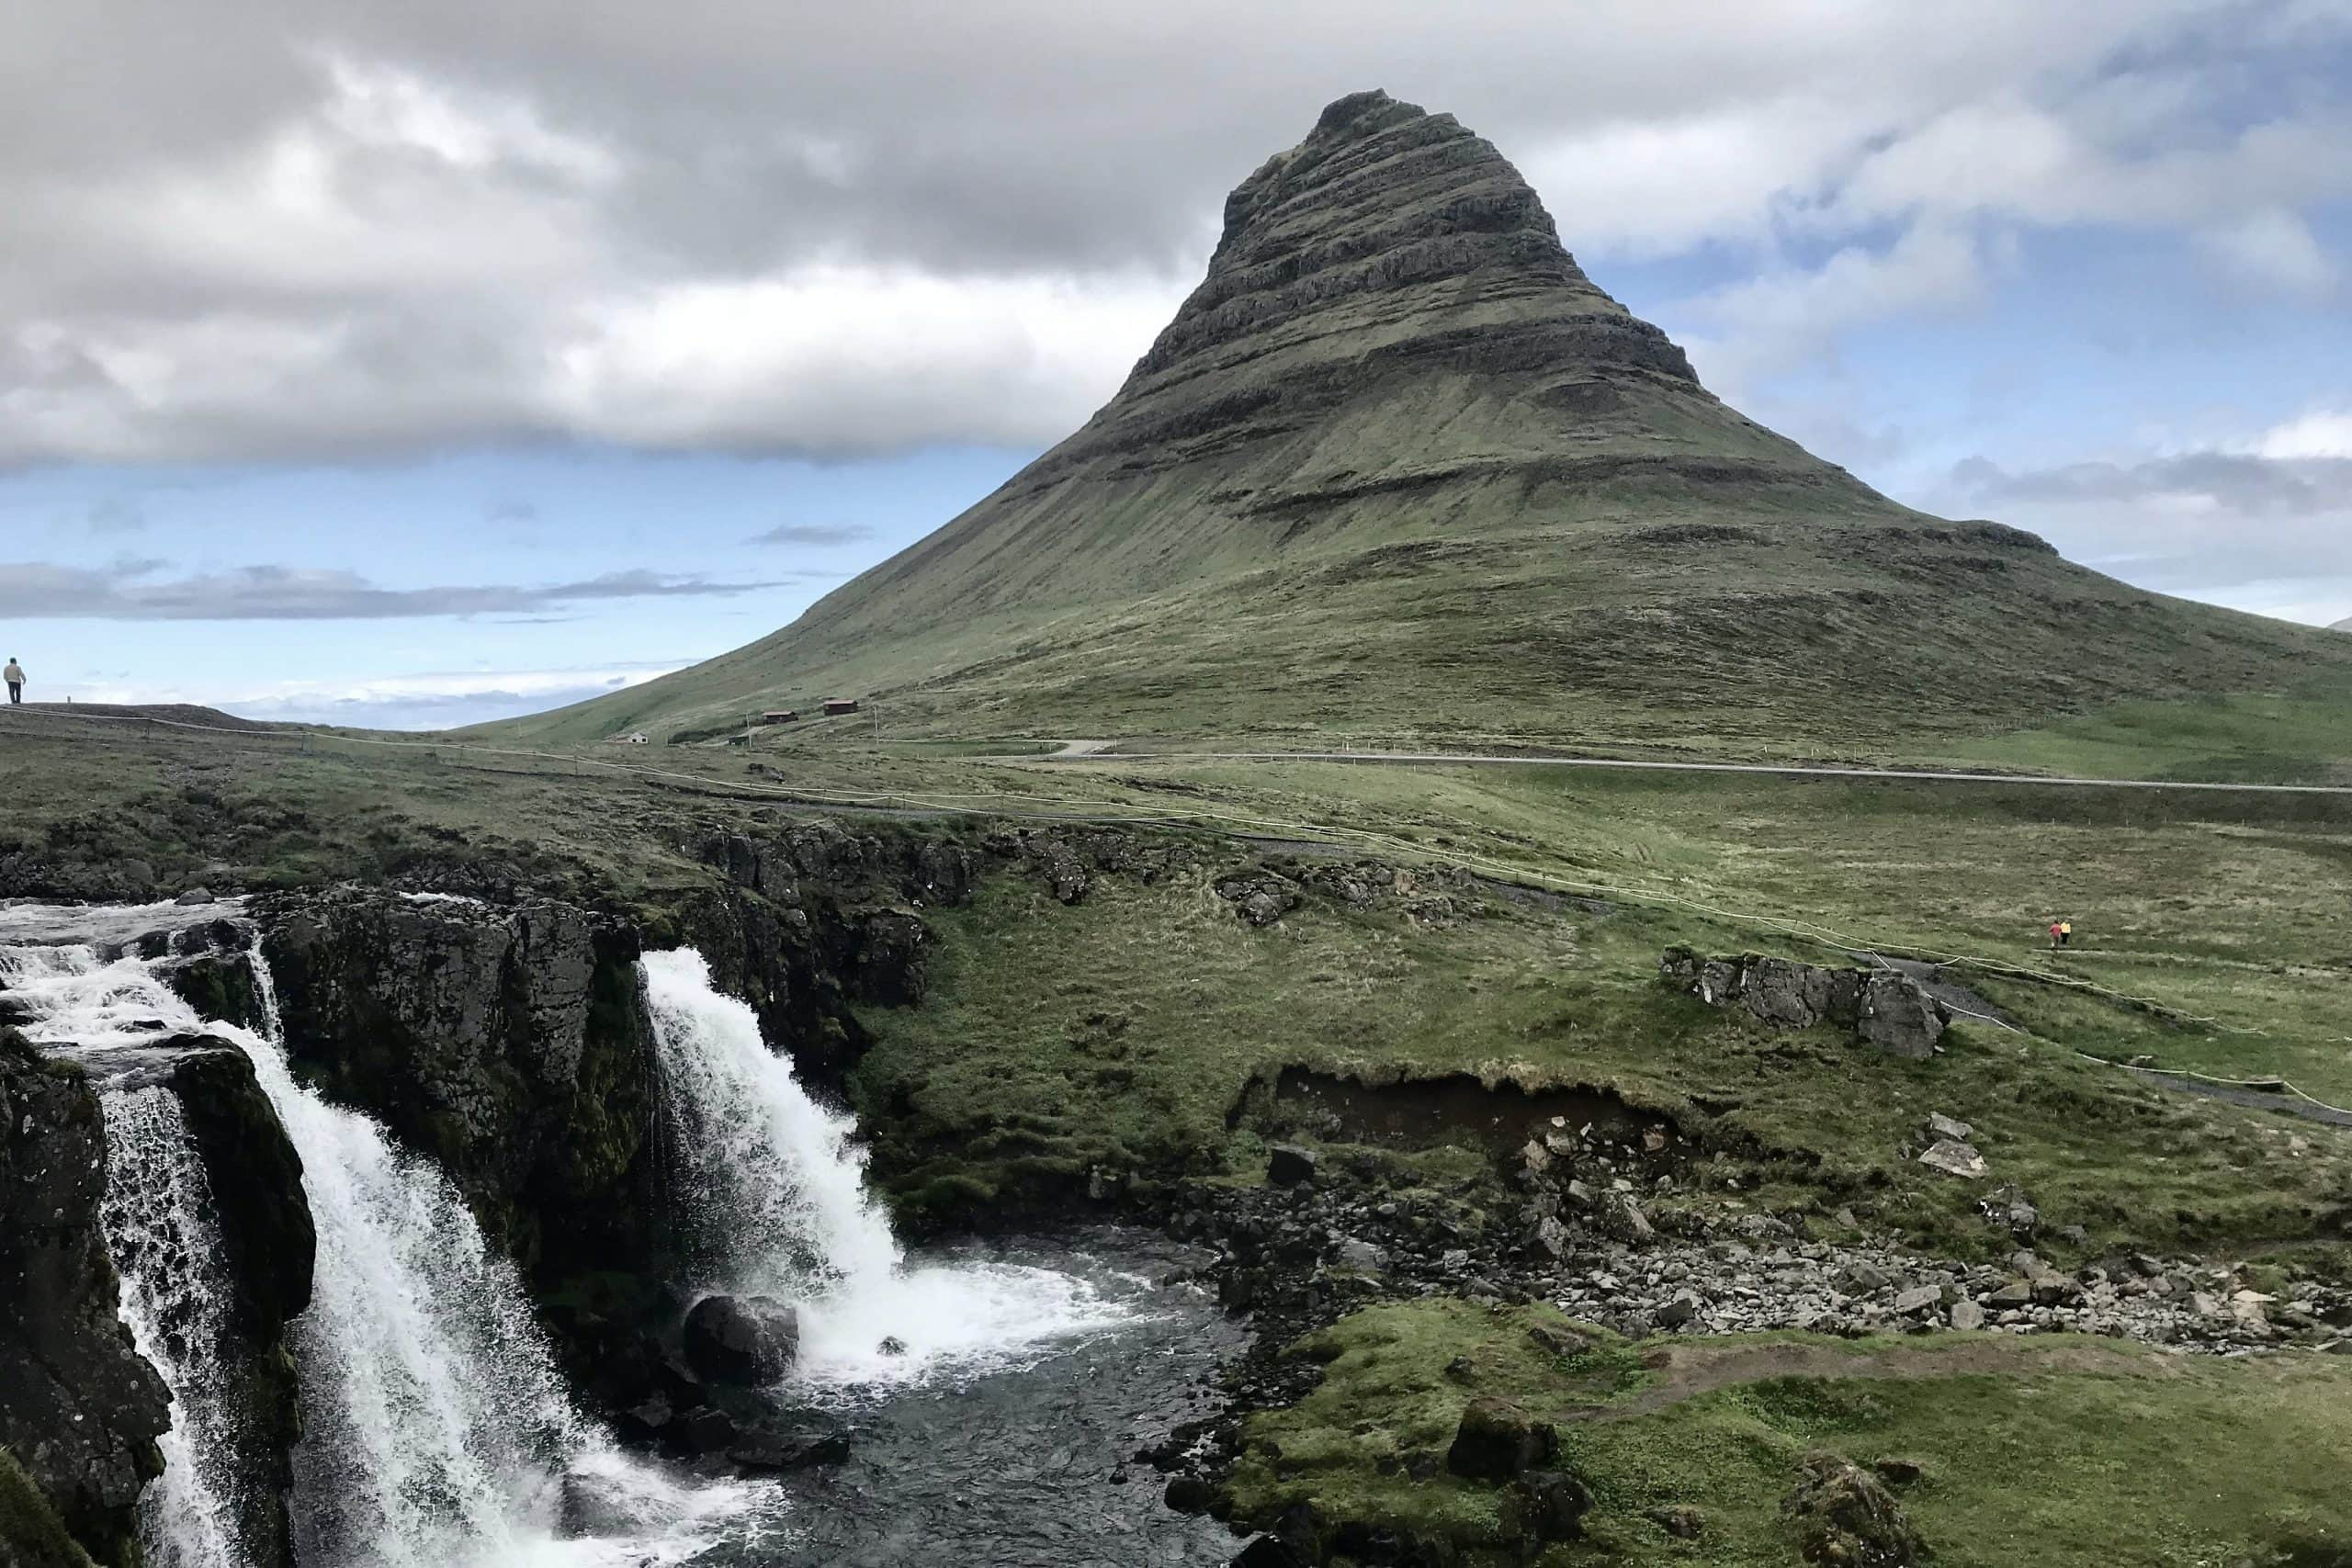 Kirljufell mountain in the Snæfellsnes peninsula iniceland, shaped like a witch's hat